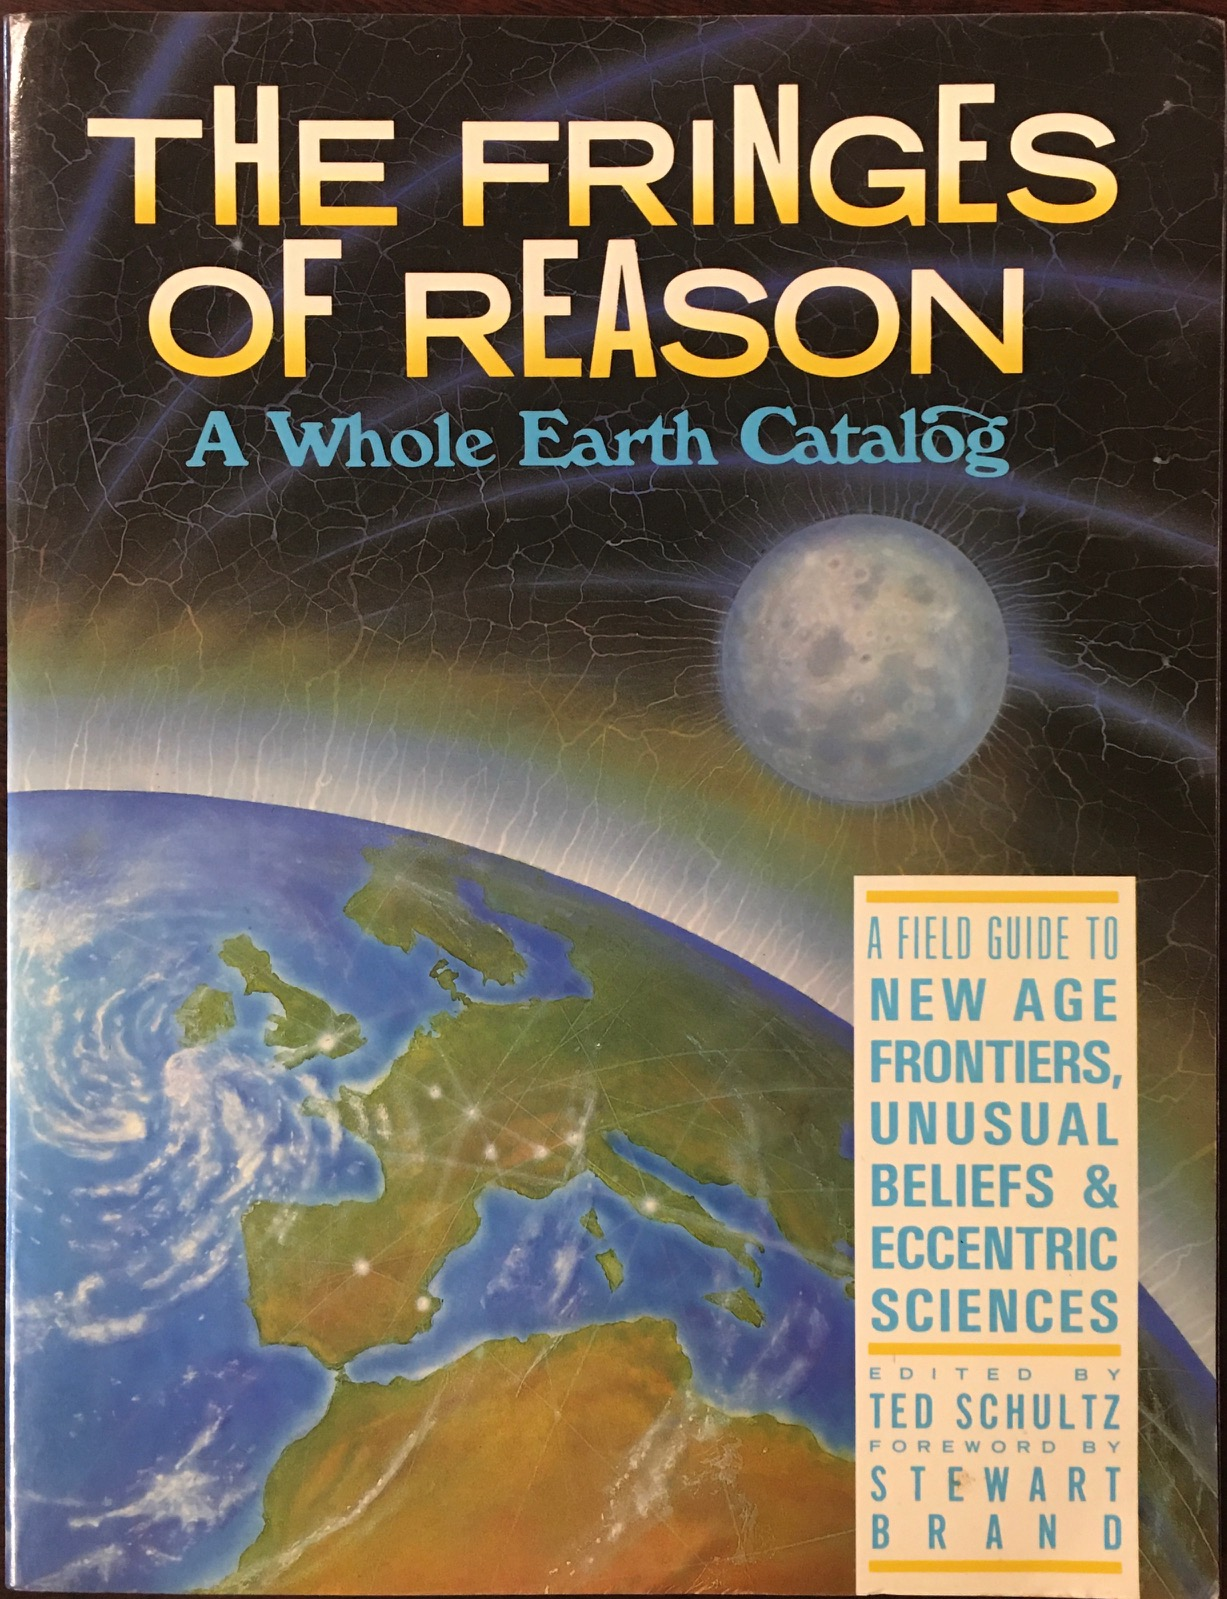 Image for Fringes of Reason: A Whole Earth Catalog (A Field Guide to New Age Frontiers, Unusual Beliefs & Eccentric Sciences)